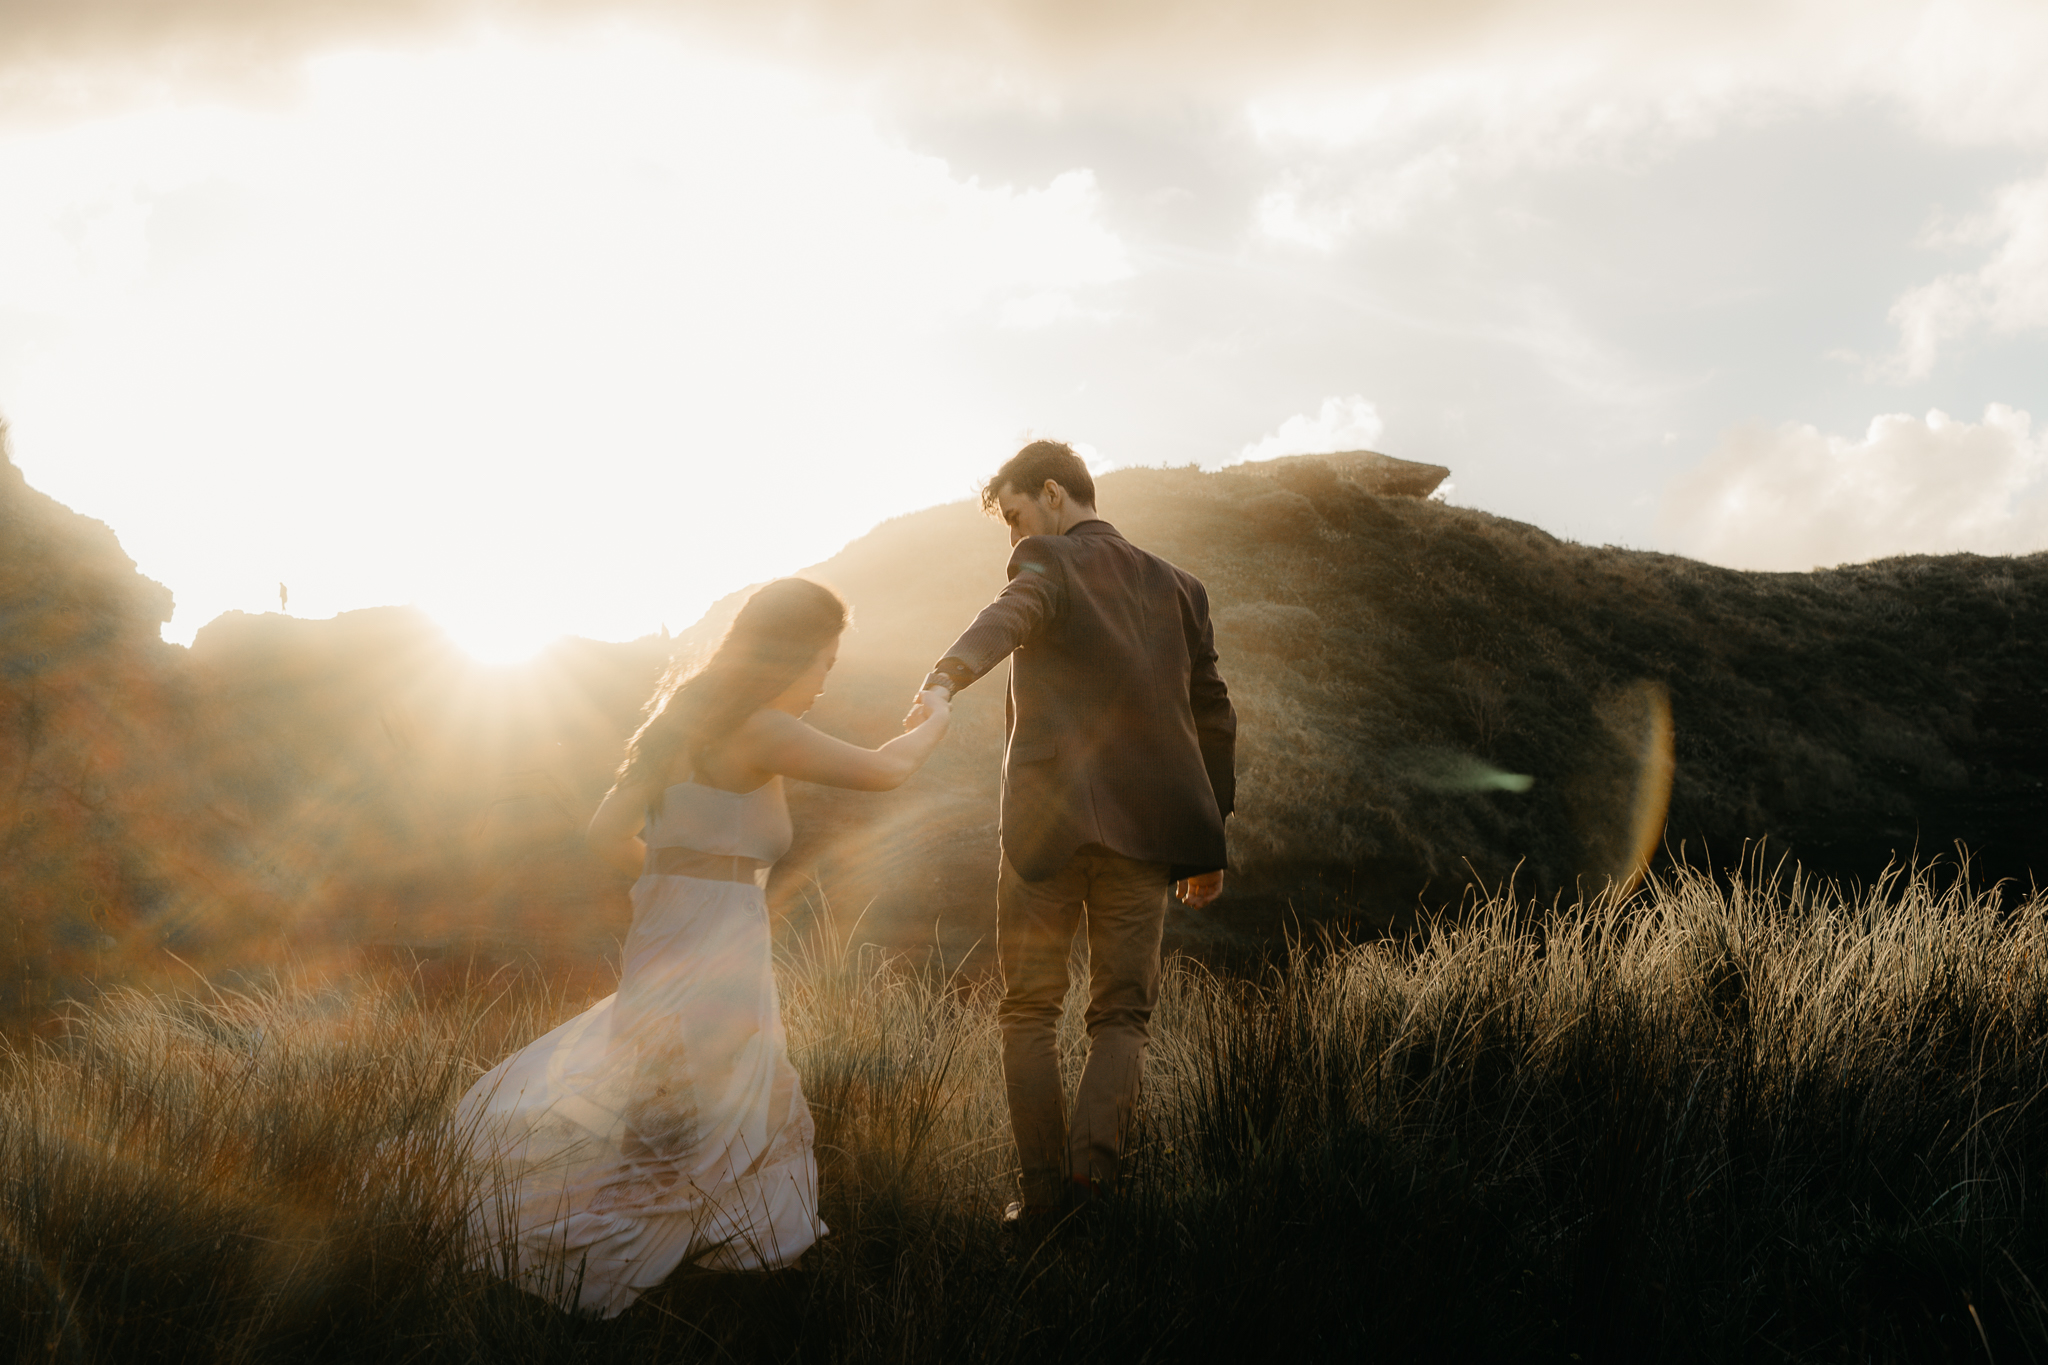 They have found me through  google  to do their  engagement shoot . Hope they hire me as their  Wedding Photographer  as well. This was shot at  Piha beach, Auckland, New Zealand  during sunset as the light is just outstandingly soft. If you are looking for a  wedding photographer in Auckland  I'm the one, As I'm aiming to be one of the  top wedding photographer  in  Auckland . I offer  affordable wedding photography services in Auckland  which is stylistic, documentive and moody.